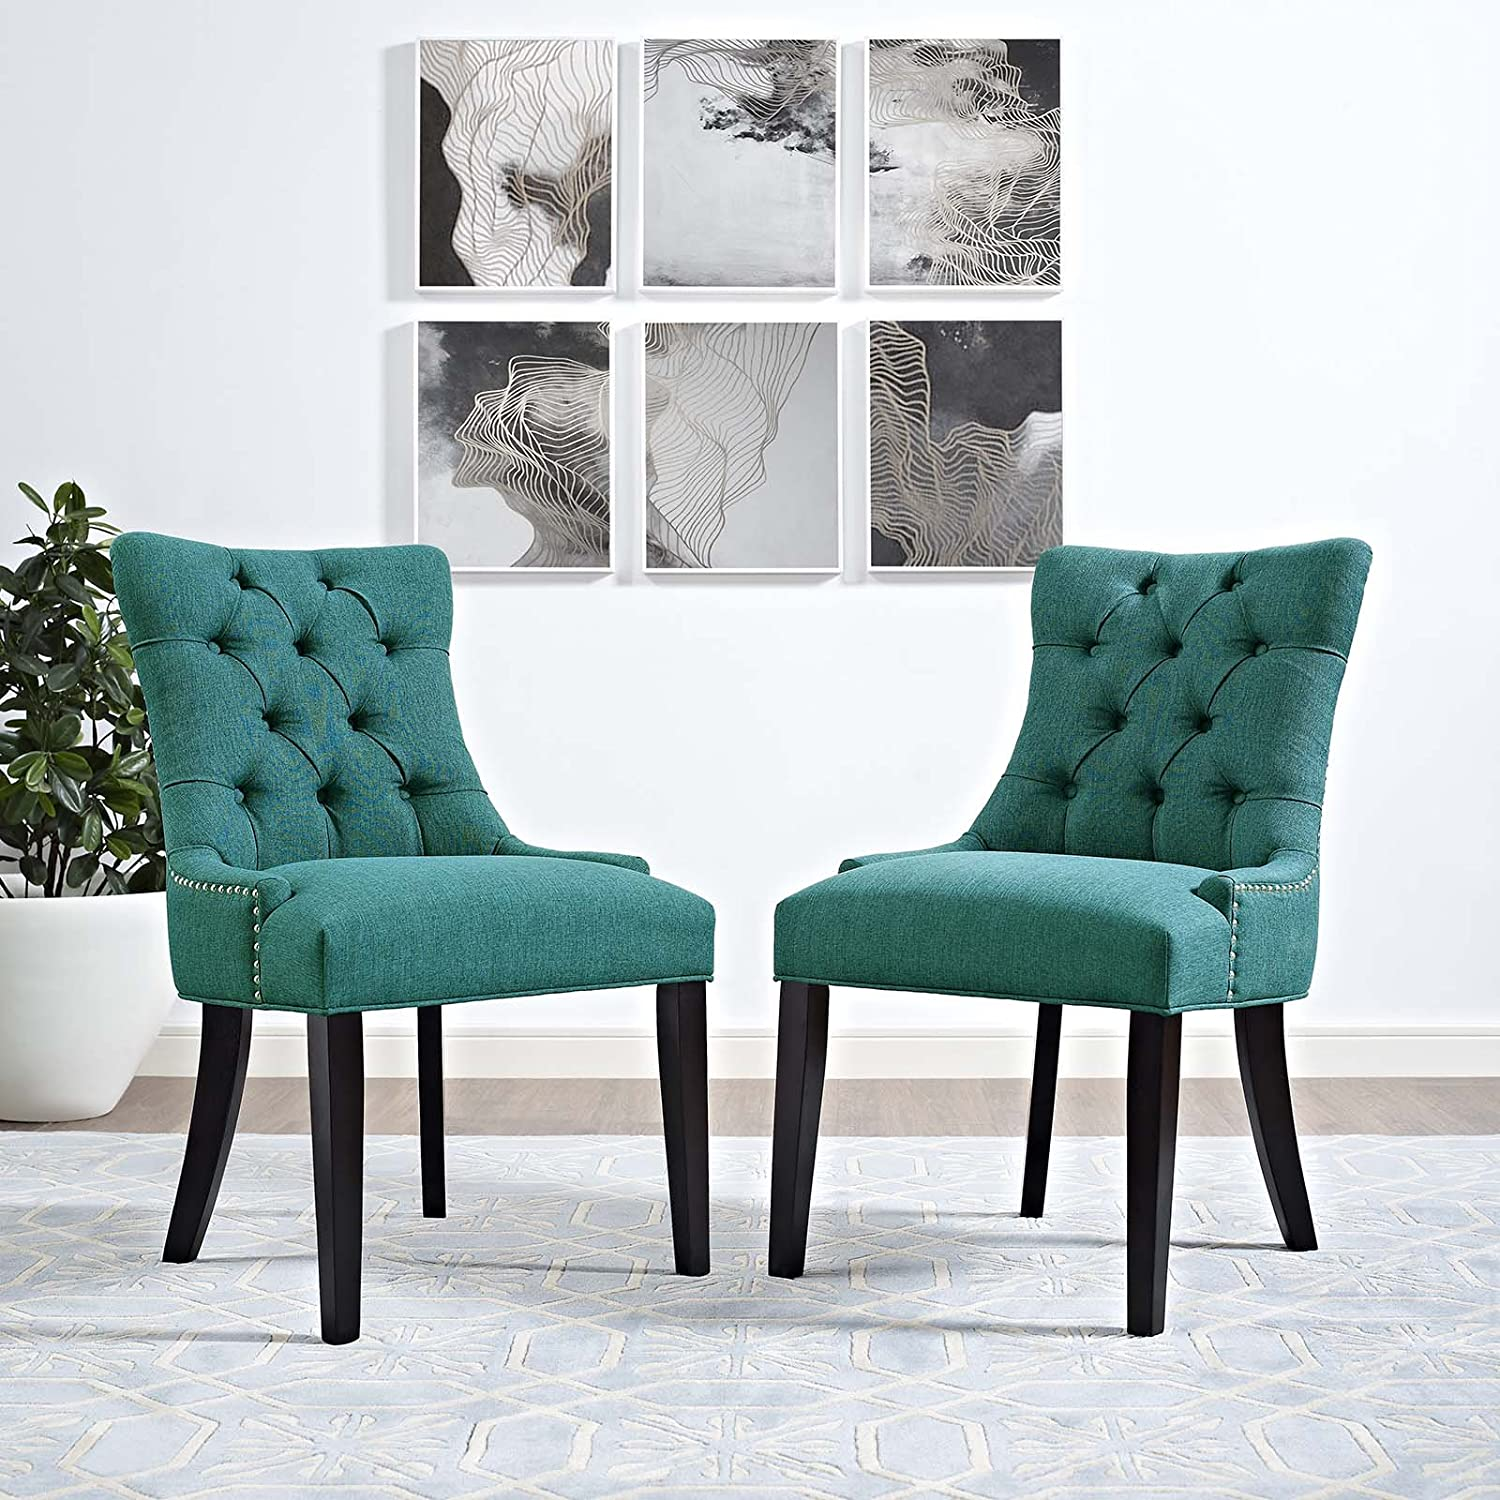 Modway Regent Modern Tufted Upholstered Fabric Two Kitchen and Dining Room Chairs with Nailhead Trim in Teal